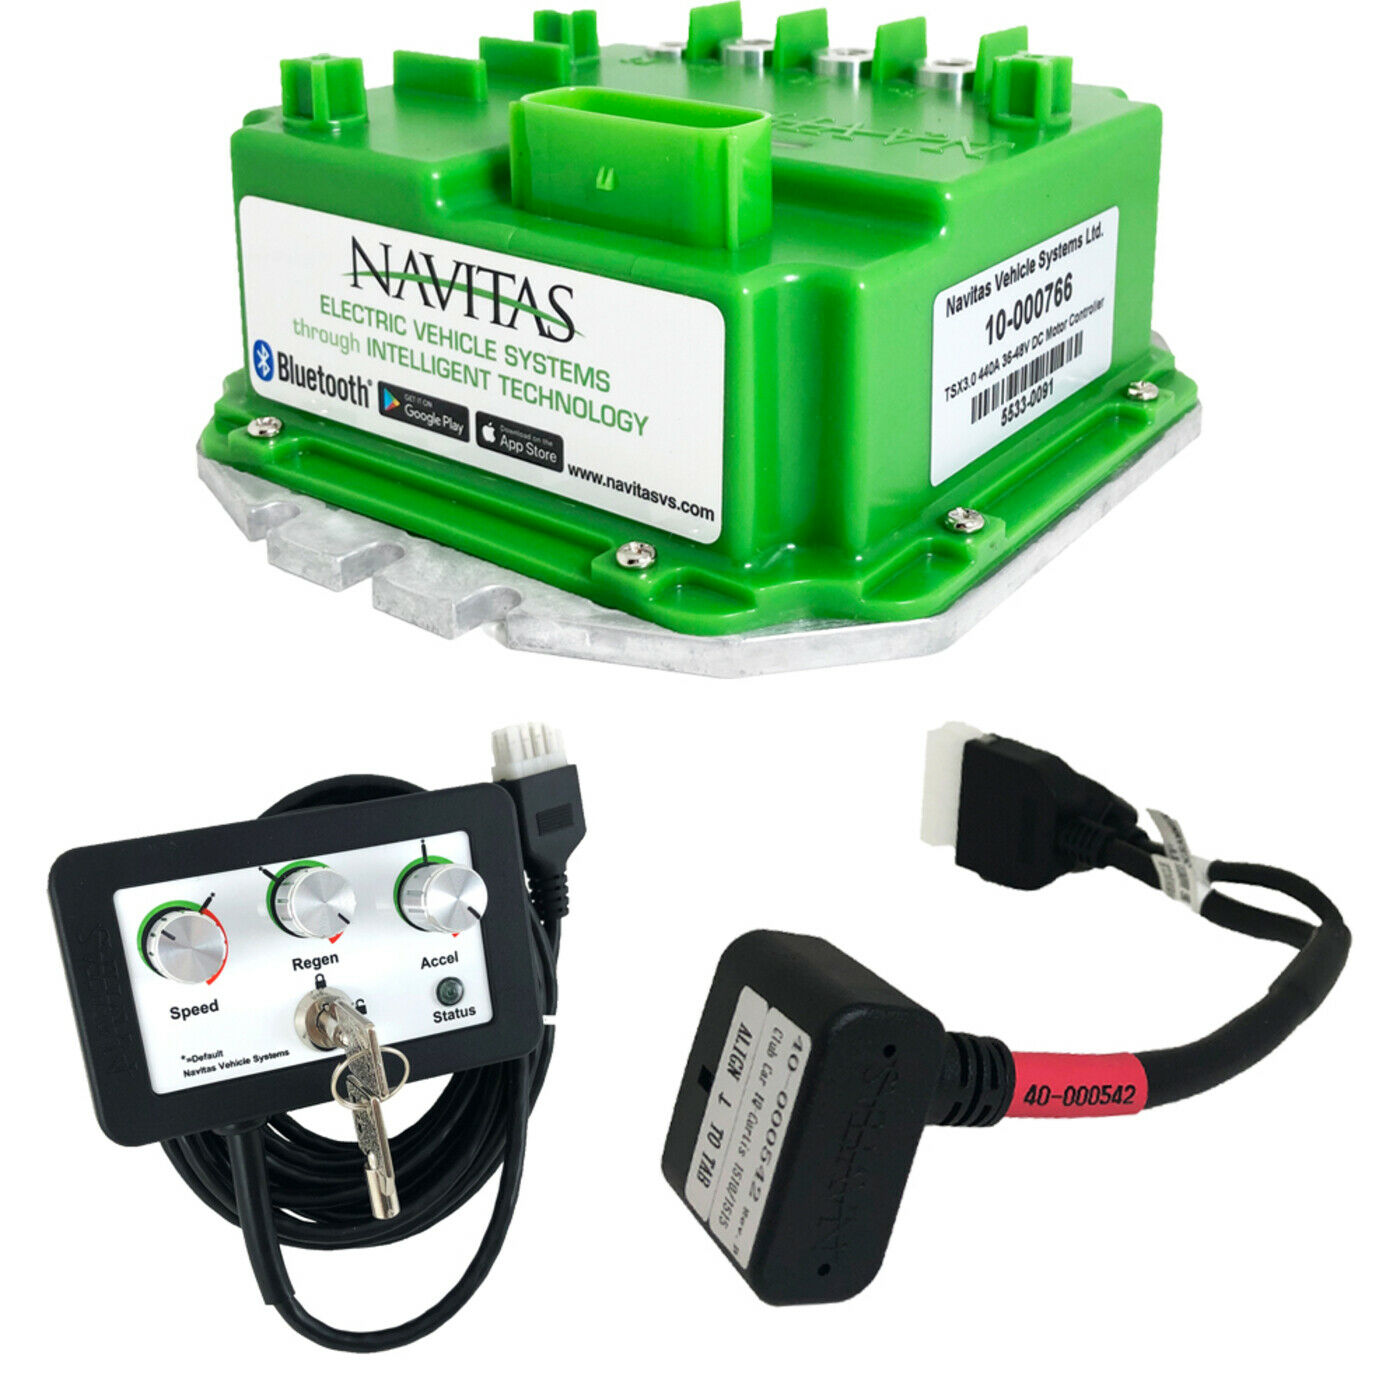 600 Amp Navitas Golf Cart Motor Controller For Club Car Ds Dcs Wiring Pds Precedent 1 Of 12only 2 Available See More